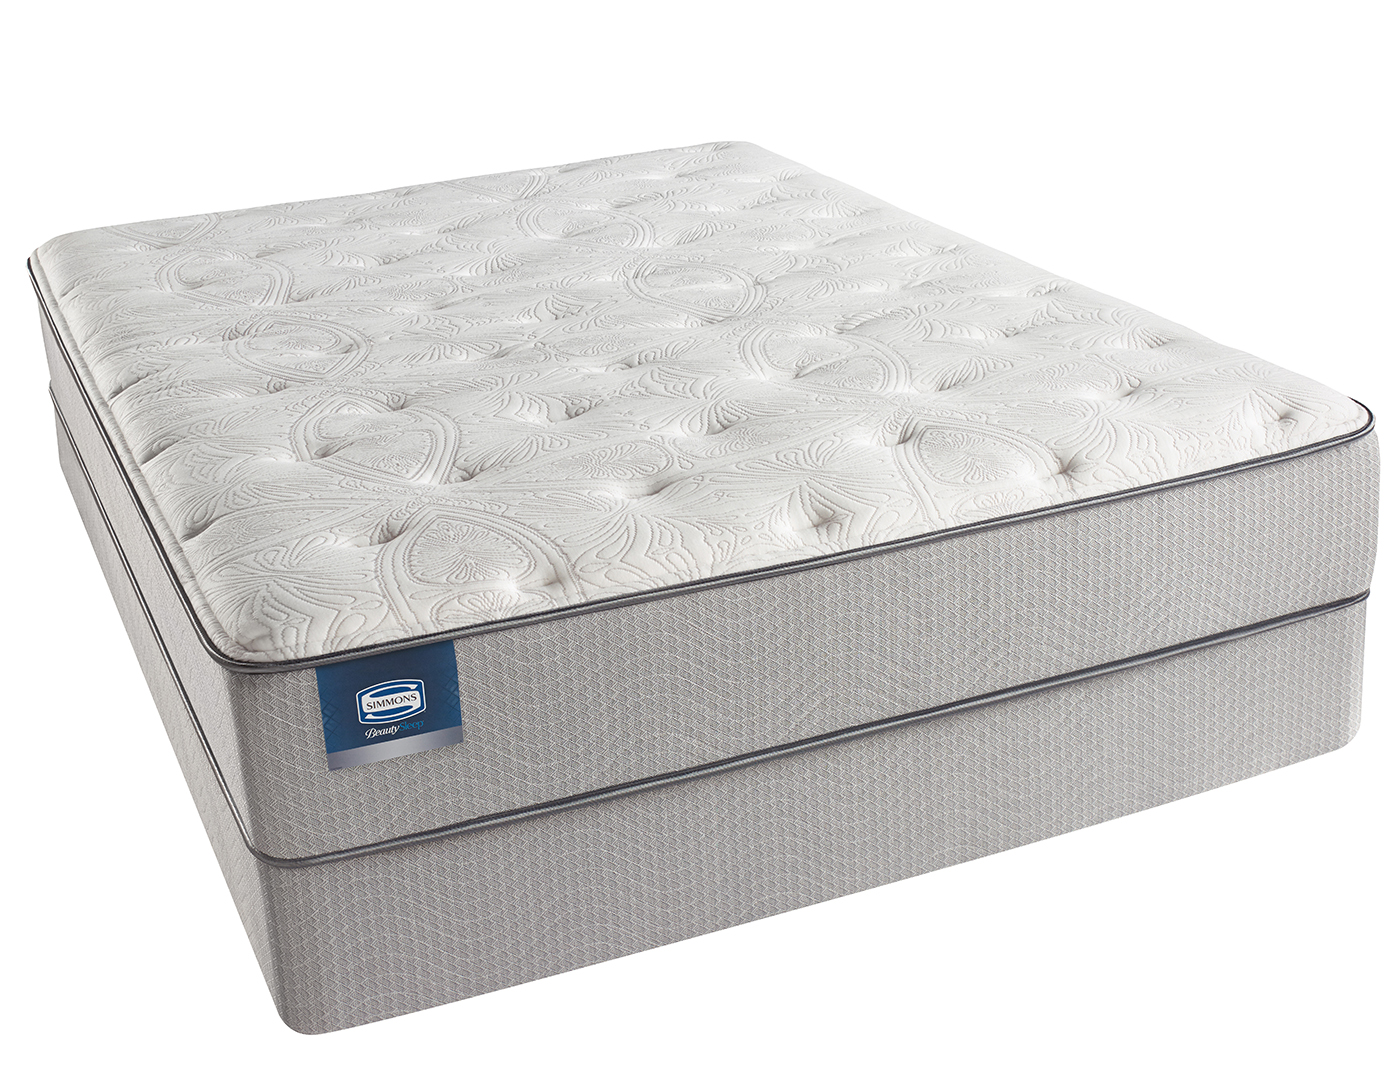 BeautySleep Assorted Queen Mattress & Boxspring Set